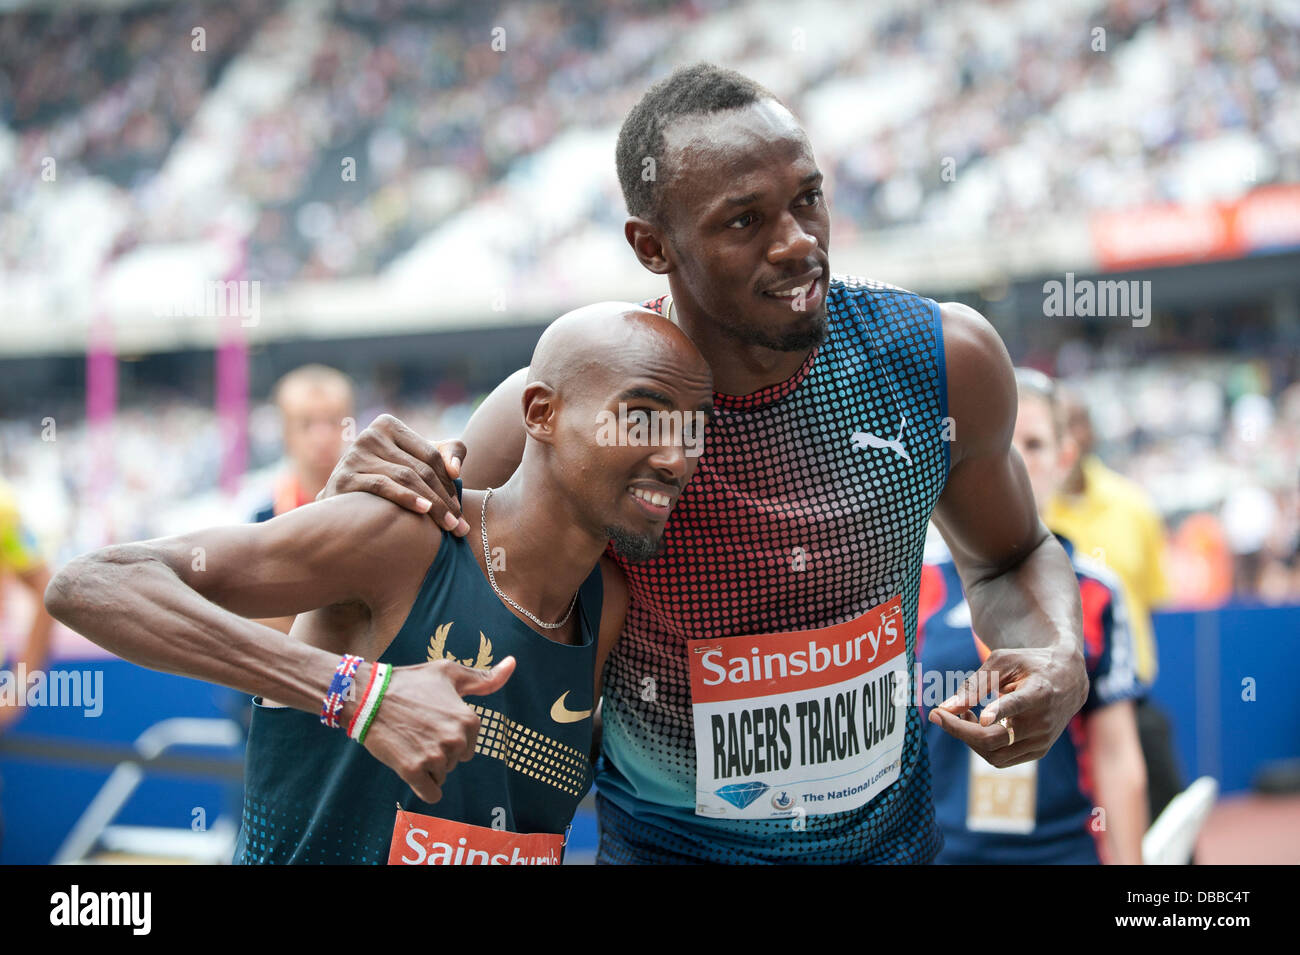 LONDON, UK. Saturday 27th July 2013. Double Olympic Champions Mo Farah and Usain Bolt pose for a photograph at the - Stock Image